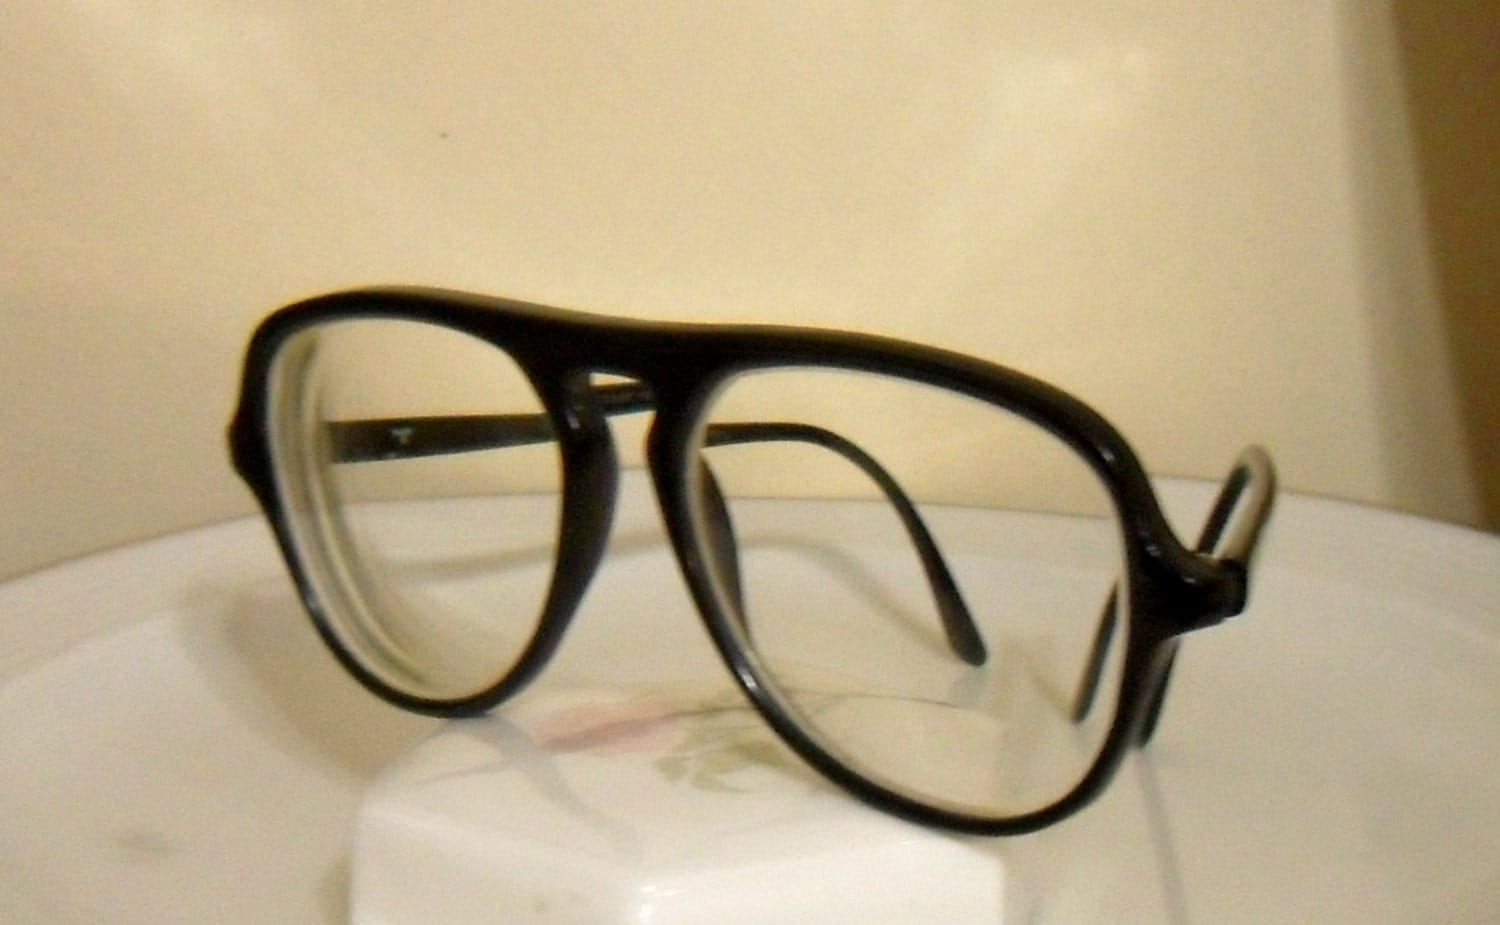 Frame Glasses Made In Italy : Vintage Toronado Wayfarer Prescription Glasses Frame Made ...